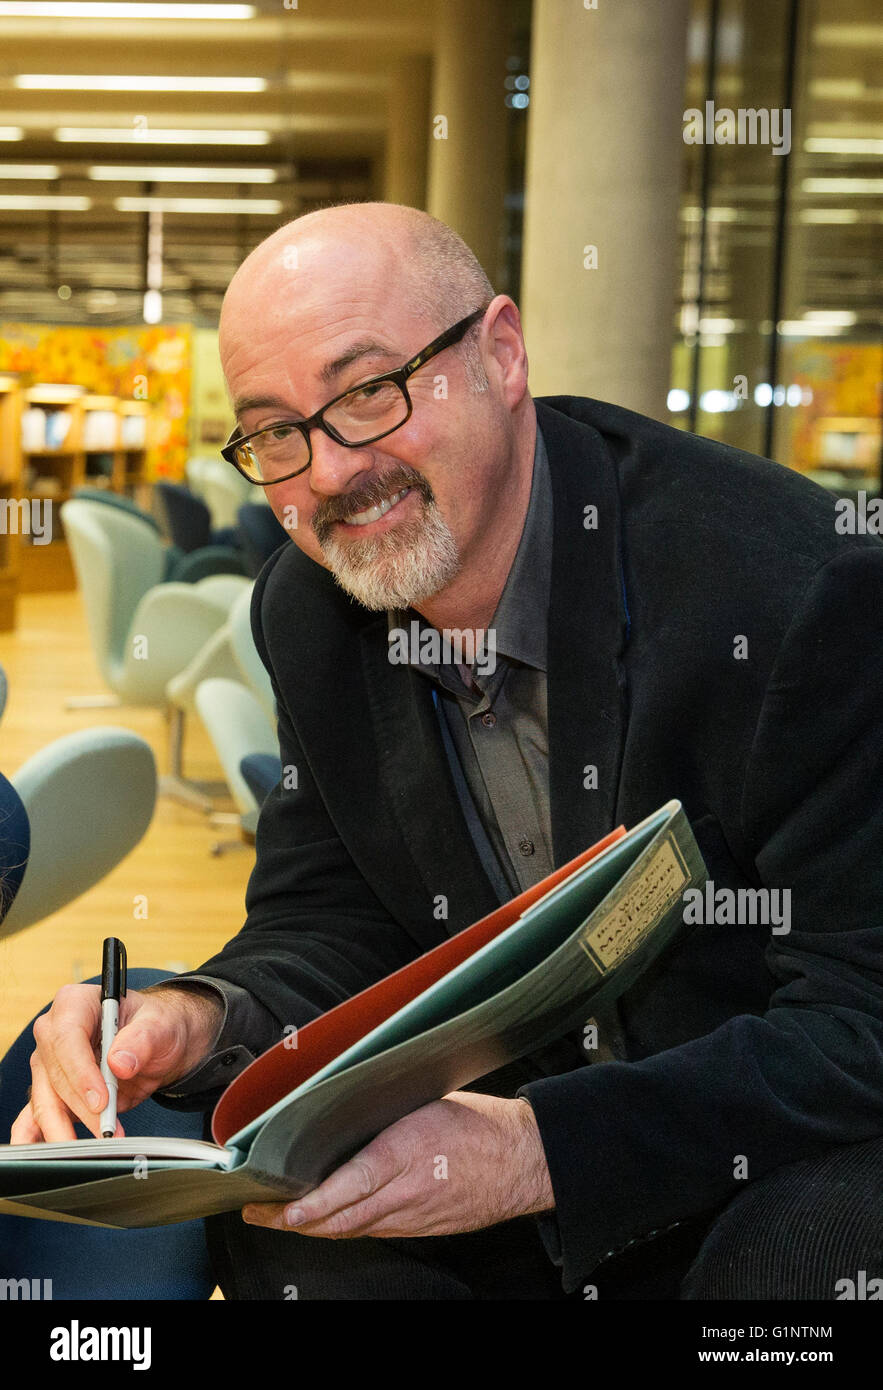 FILE PICS: 17th May 2016 - PJ Lynch announced as Laureate na nÓg by President Michael D Higgins - Irish author - Stock Image